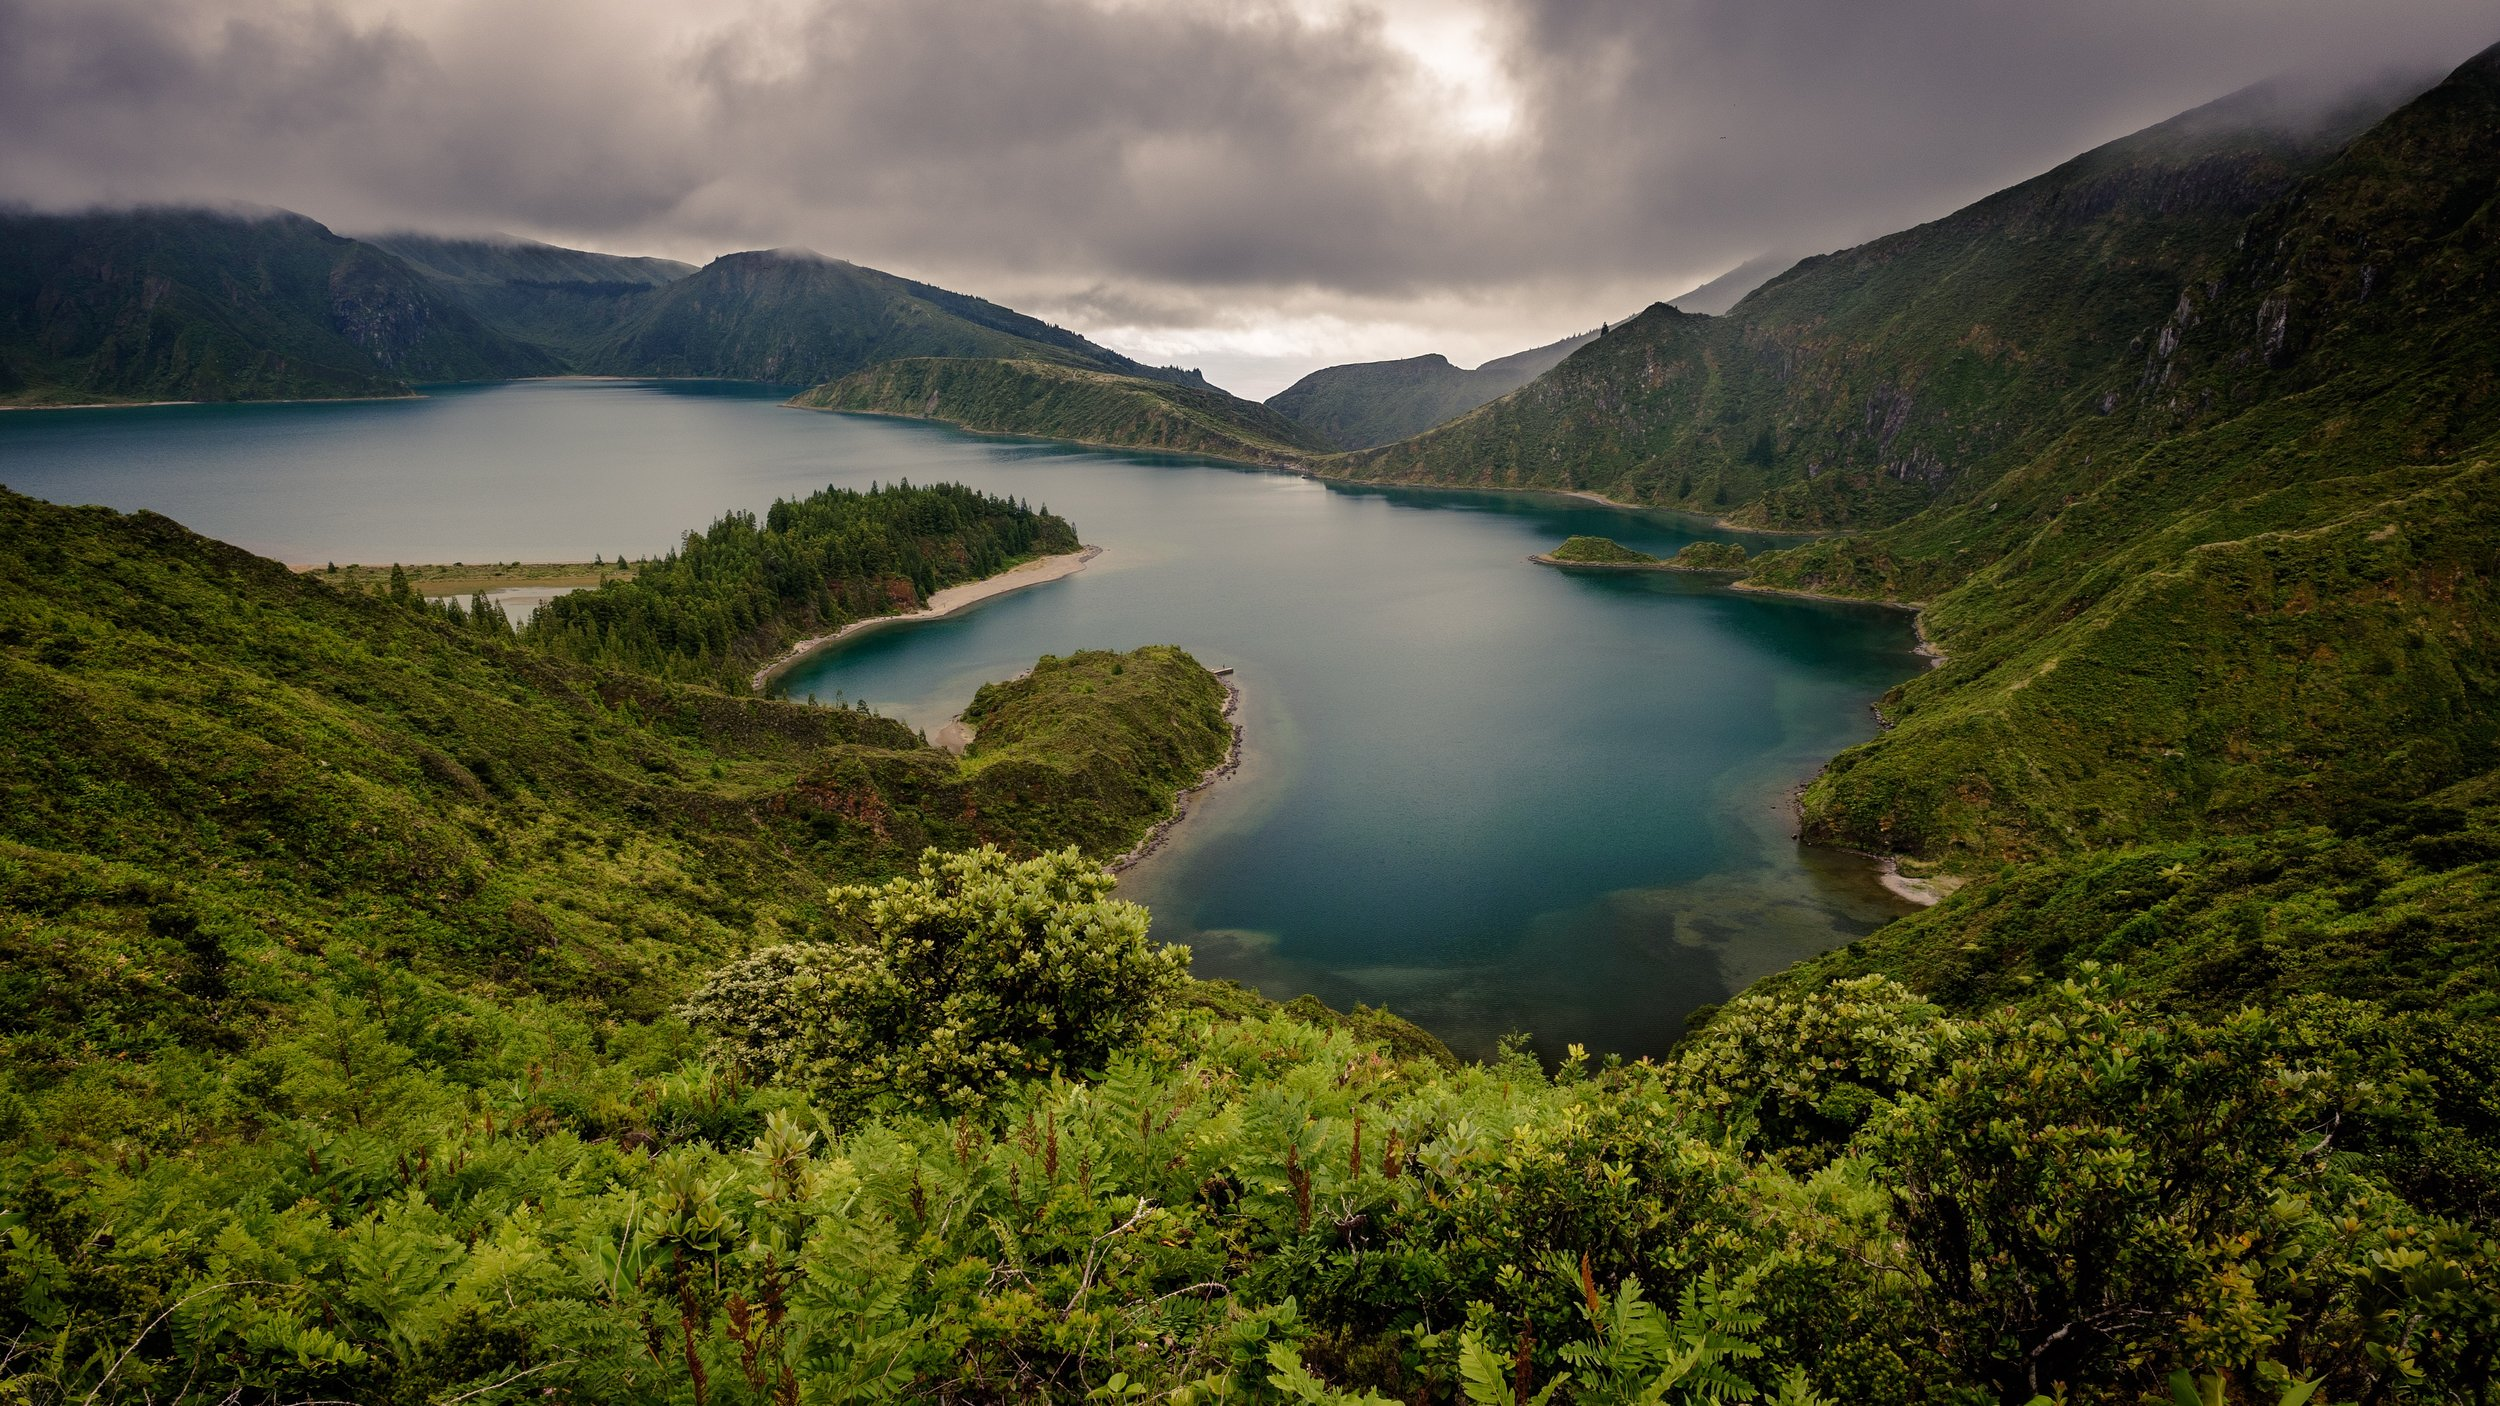 beautiful view of lake lagoa do fogo on island of sao miguel azores in portugal.jpg